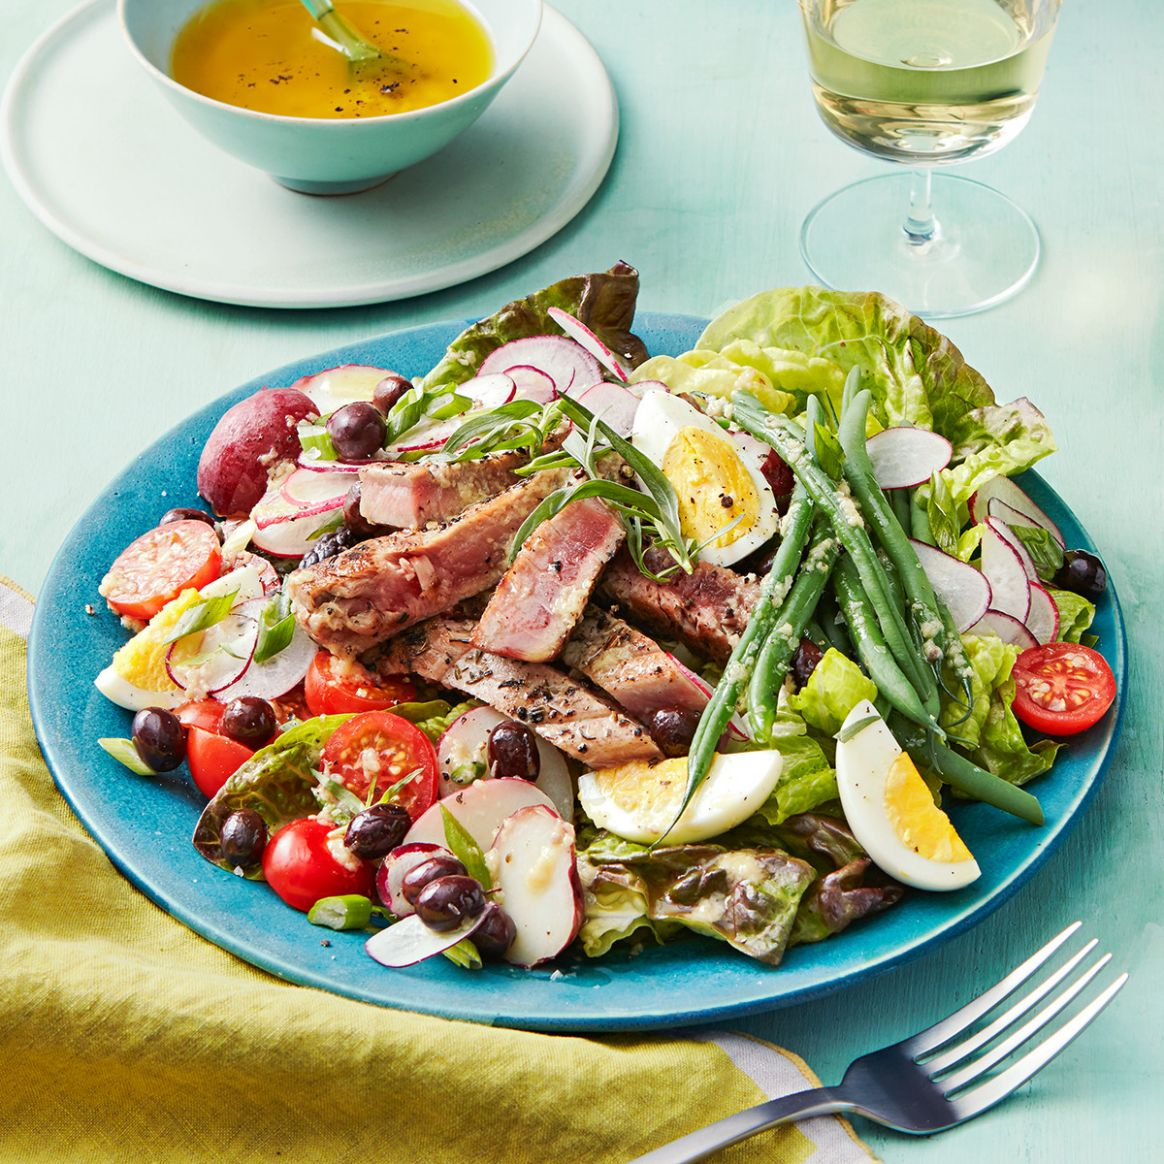 Grilled Tuna Nicoise Salad with Anchovy Dressing - Recipes Salad Nicoise